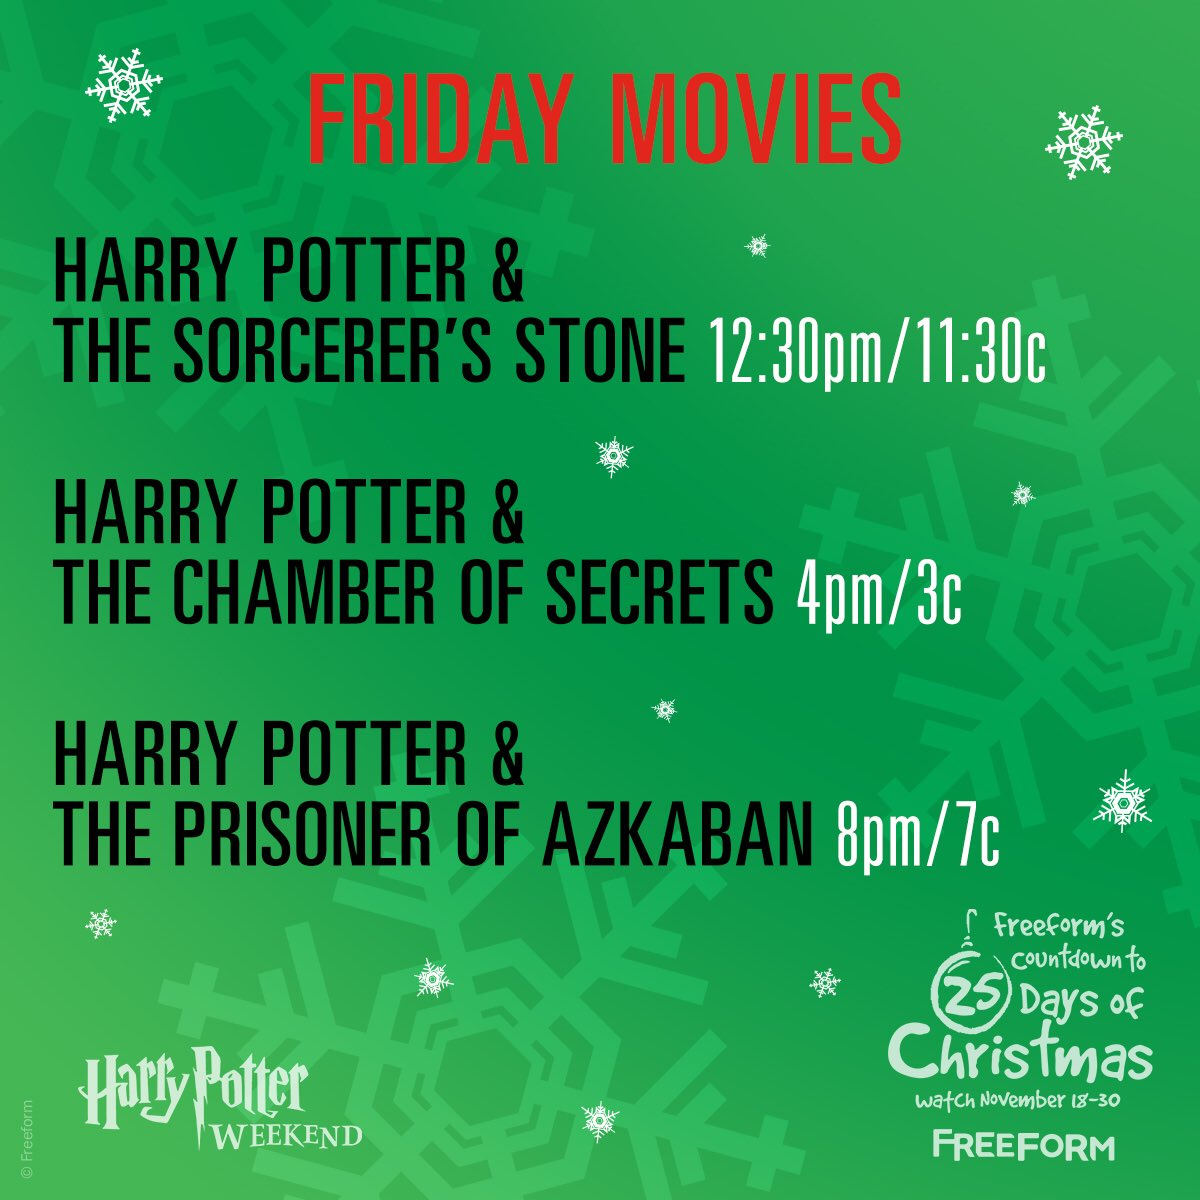 freeform on twitter escape the muggles weve got you covered today merry potter weekend part of countdown to freeforms 25daysofchristmas starts